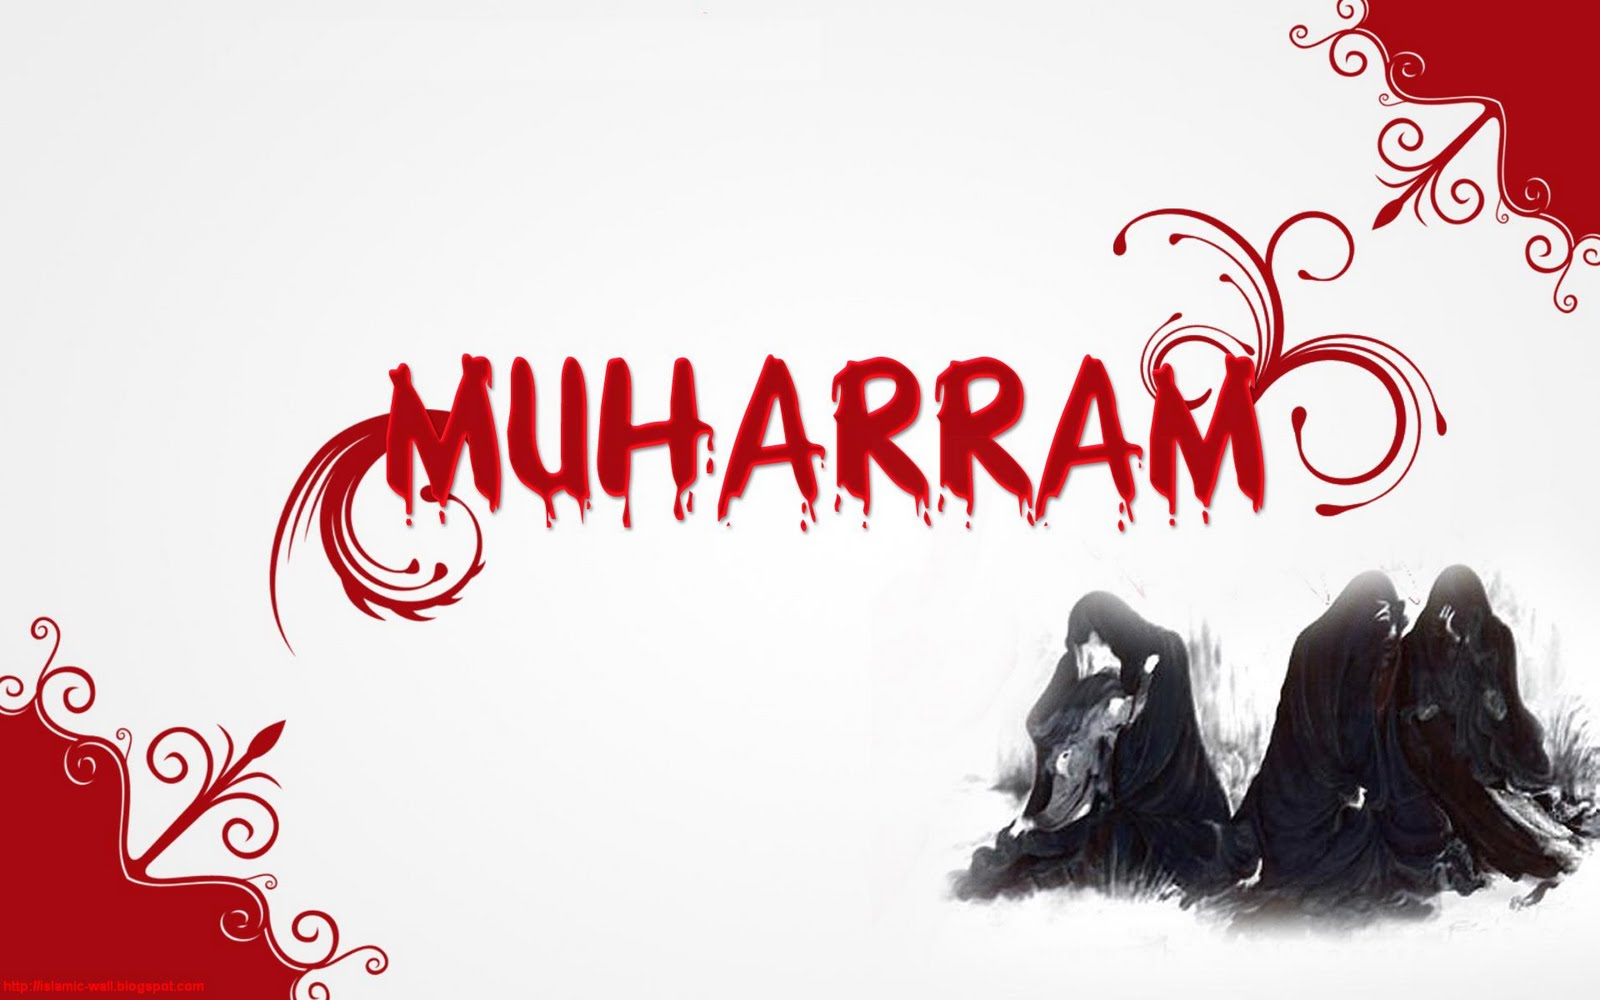 muharram pictures images graphics for facebook whatsapp